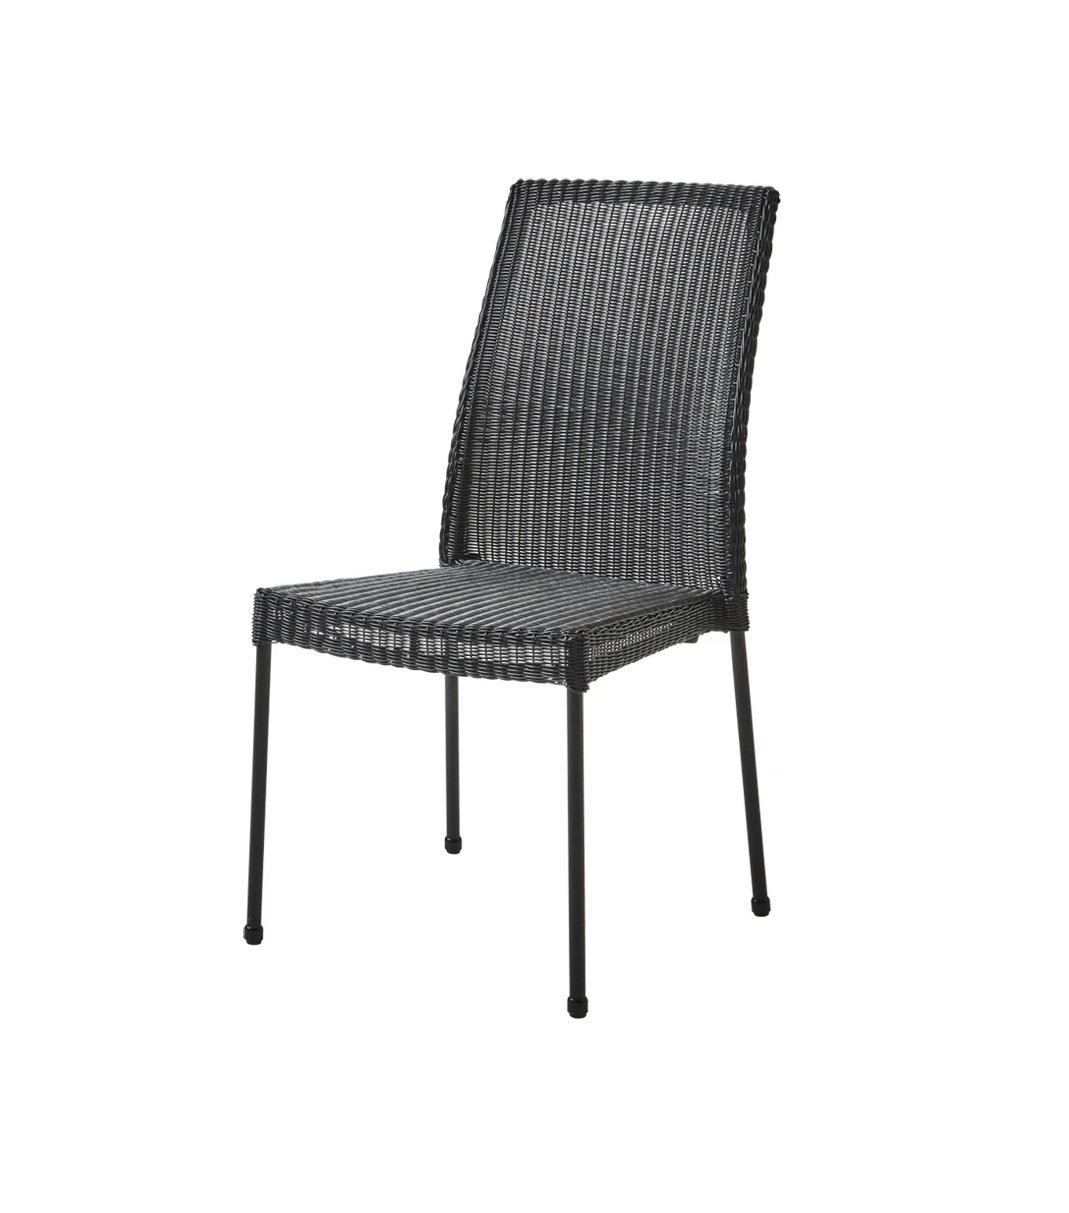 Newport Chair from Cane-line, designed by Cane-line Design Team